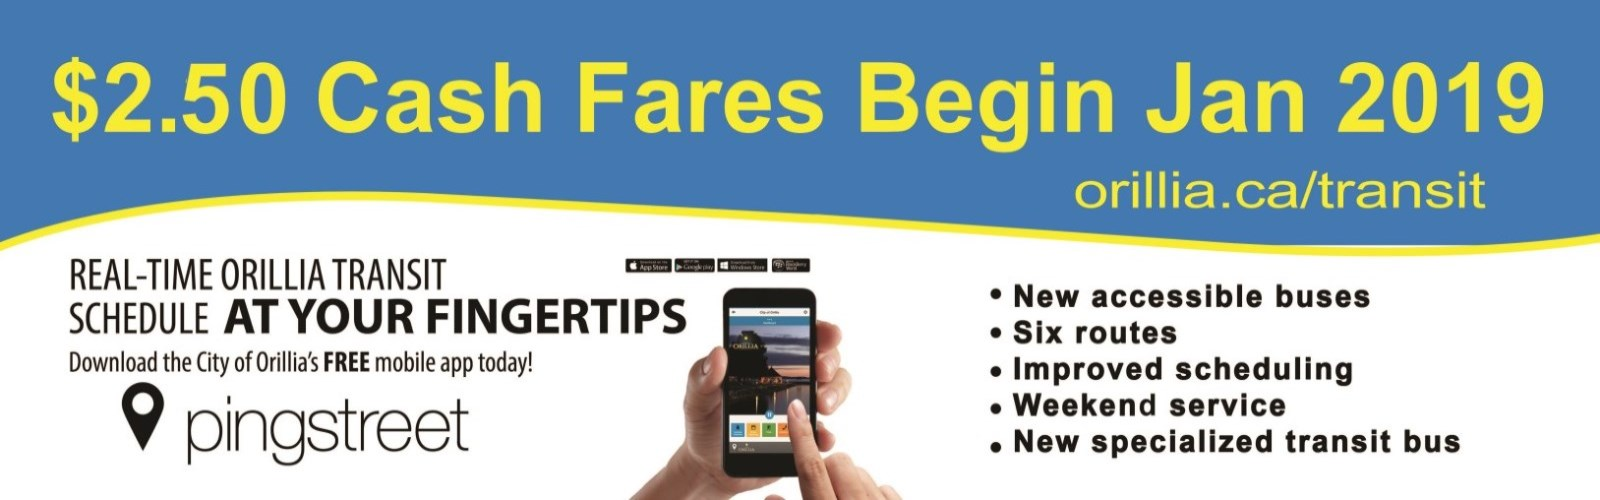 Transit Fares are $2.50 beginning January 2, 2019